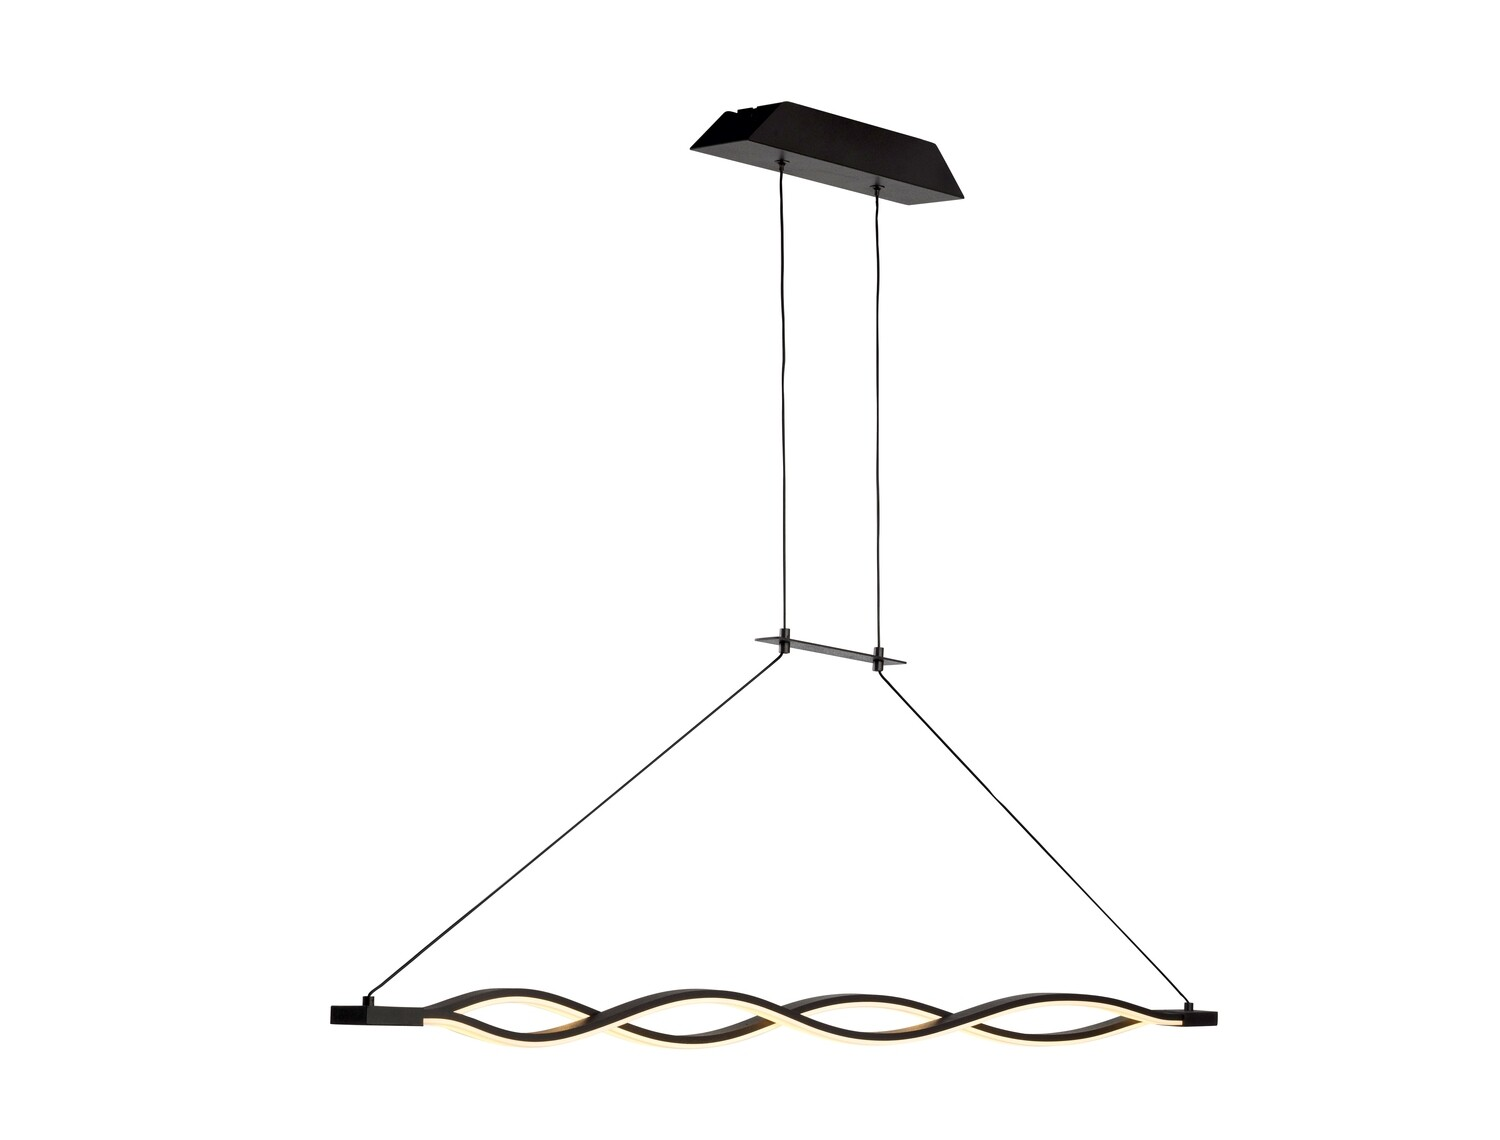 Sahara Linear Pendant 36W LED 2800K, 2520lm, DIMMABLE Frosted Acrylic, Brown Oxide